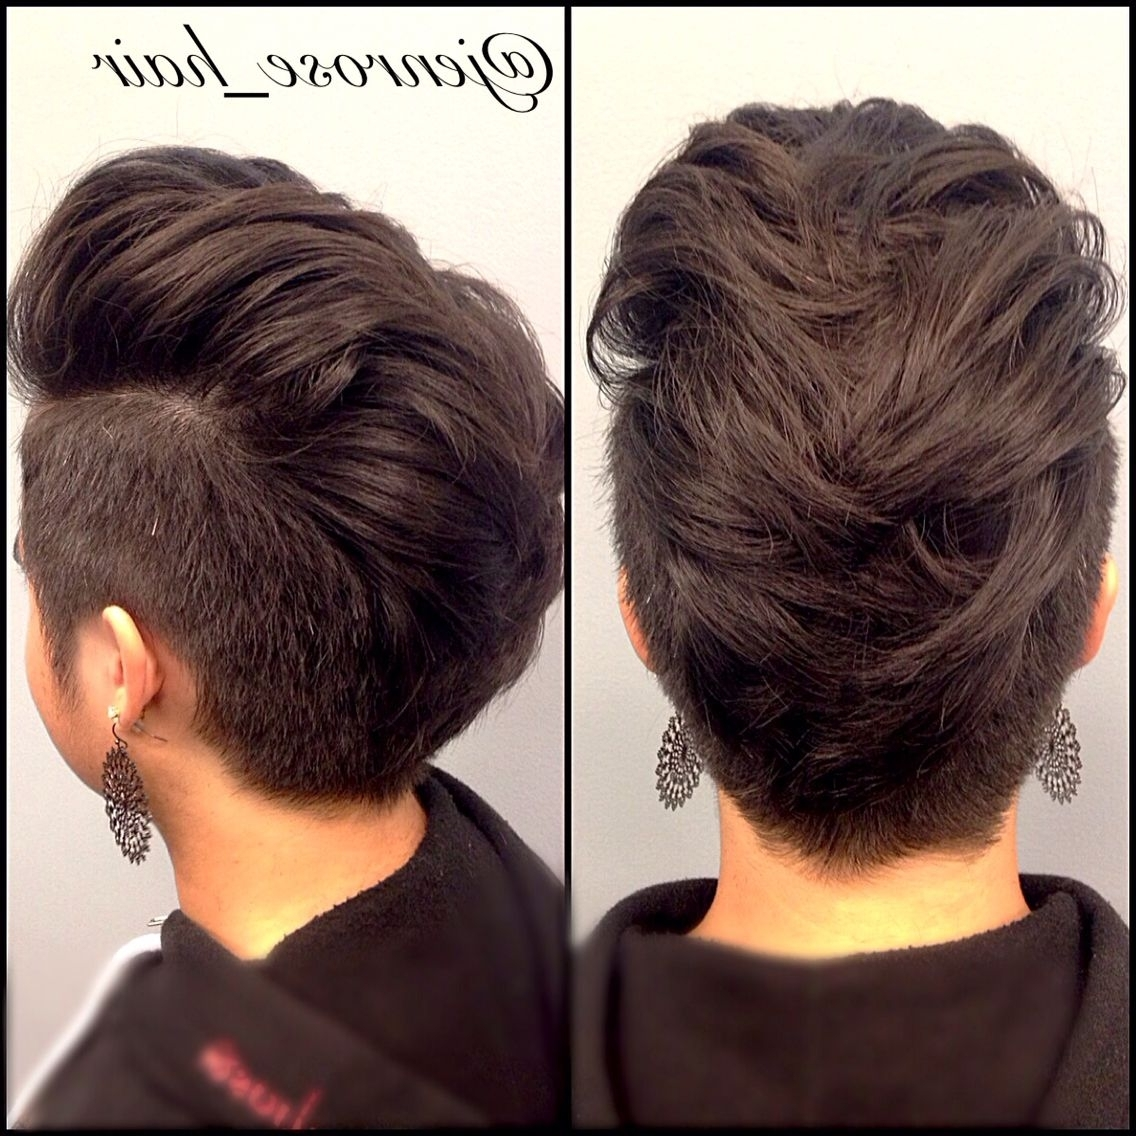 Women's Faux Hawk With Shaved Sides. Shorts Women's Hair Cut (View 6 of 20)